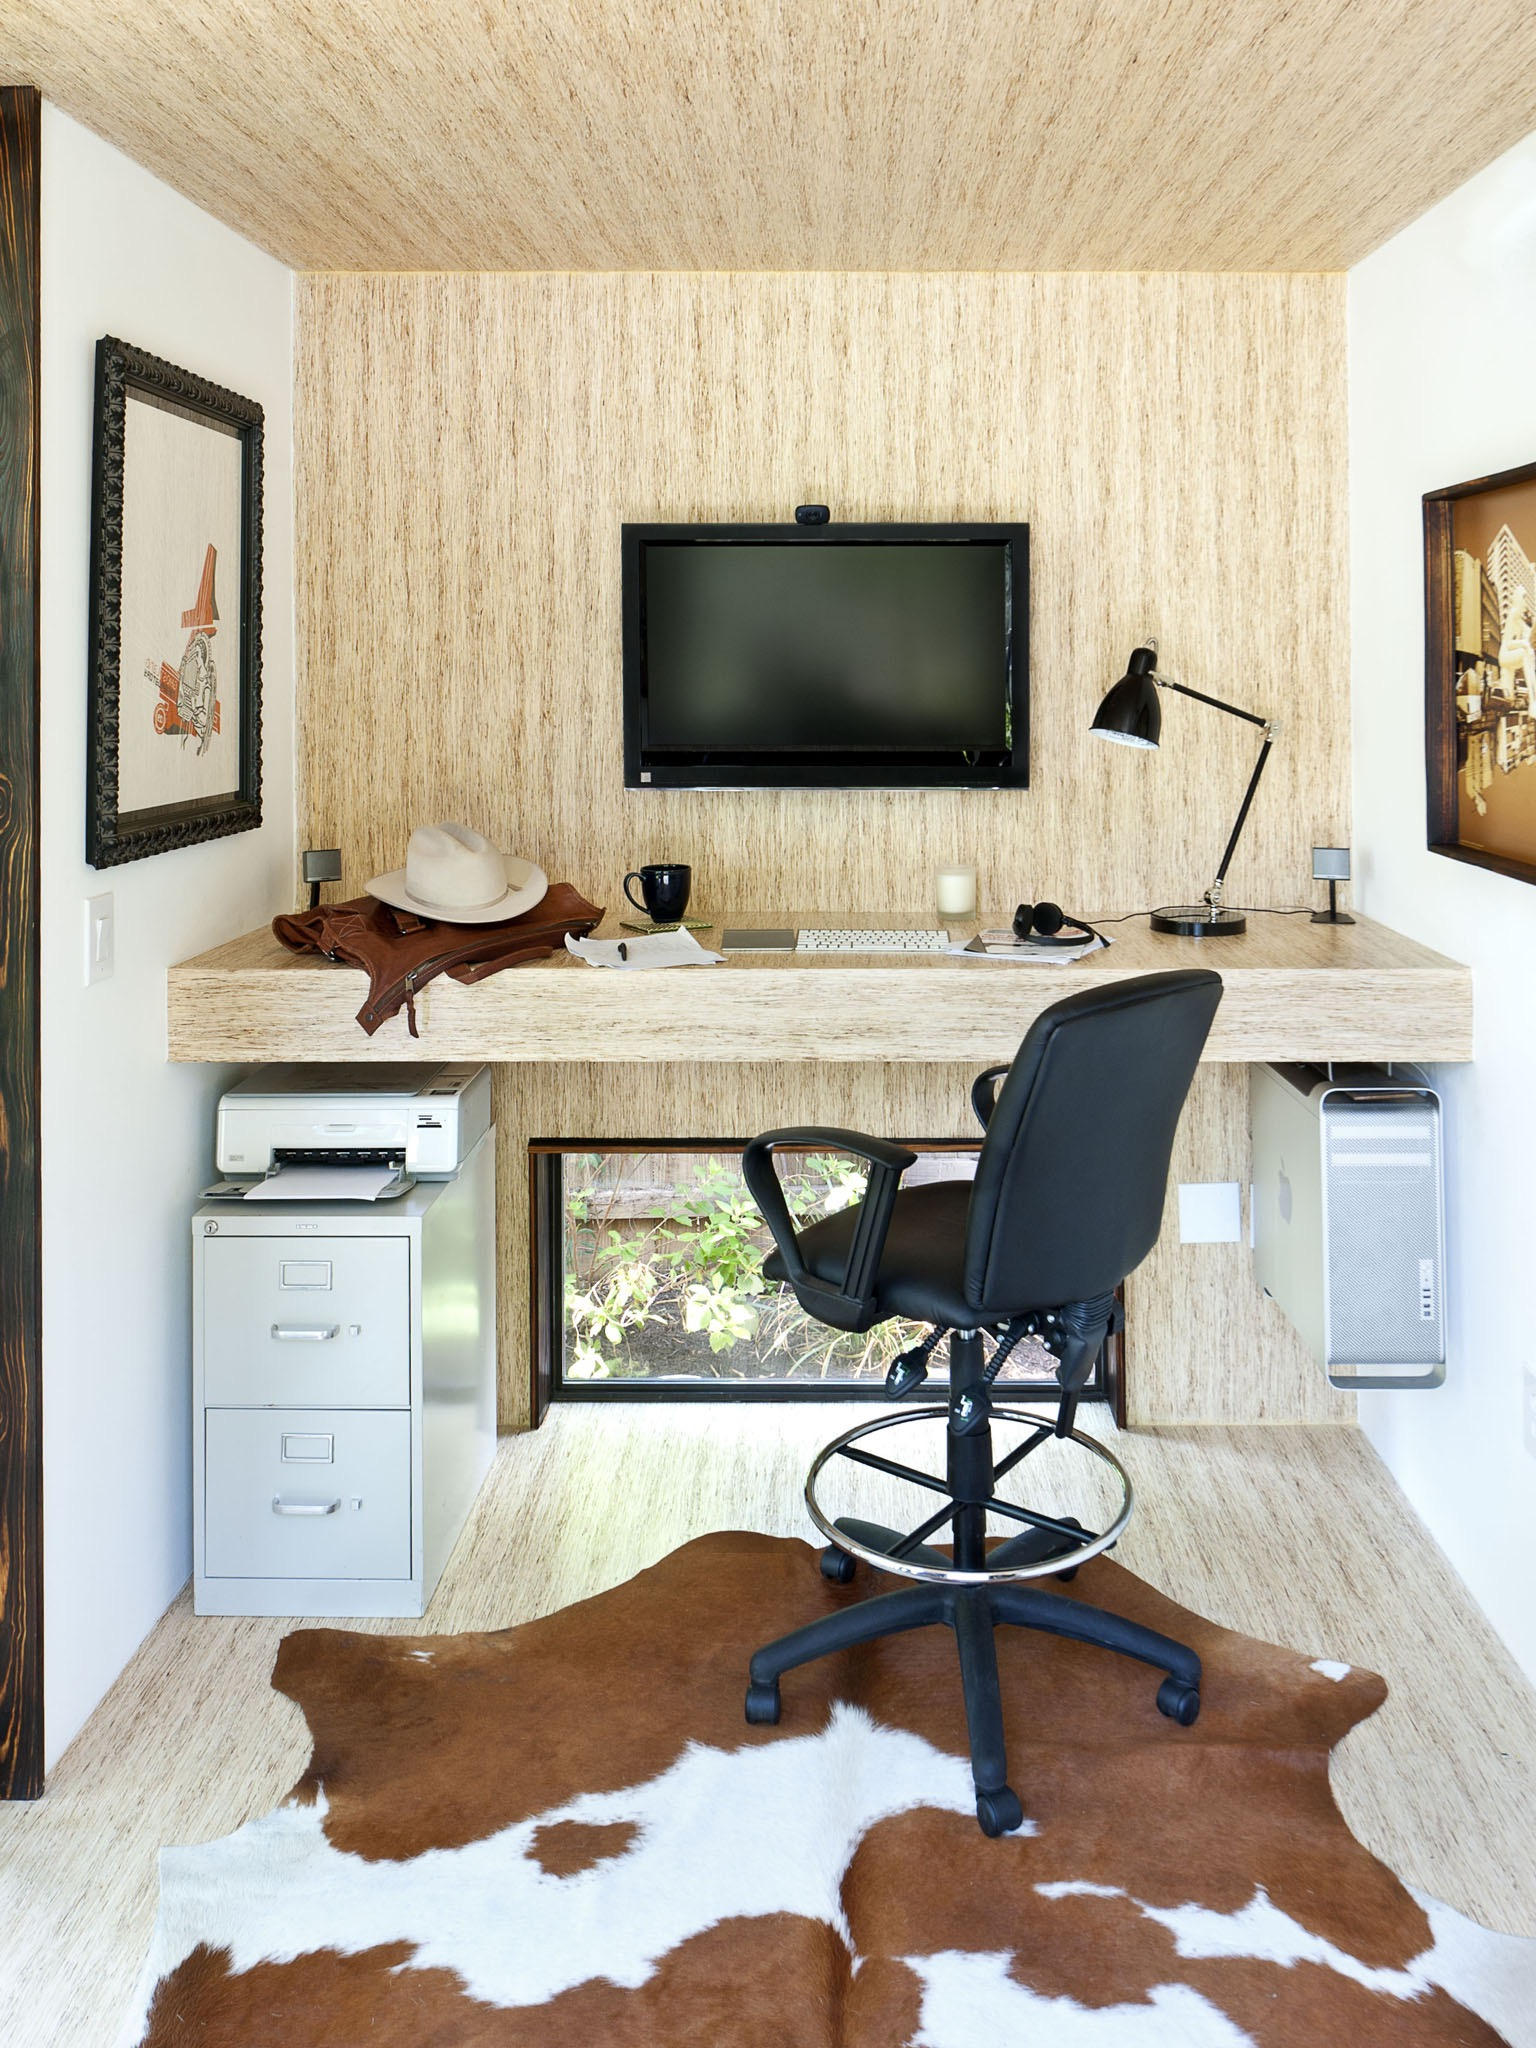 Contemporary Minimalist Home Office For Small Interior (Image 12 of 50)